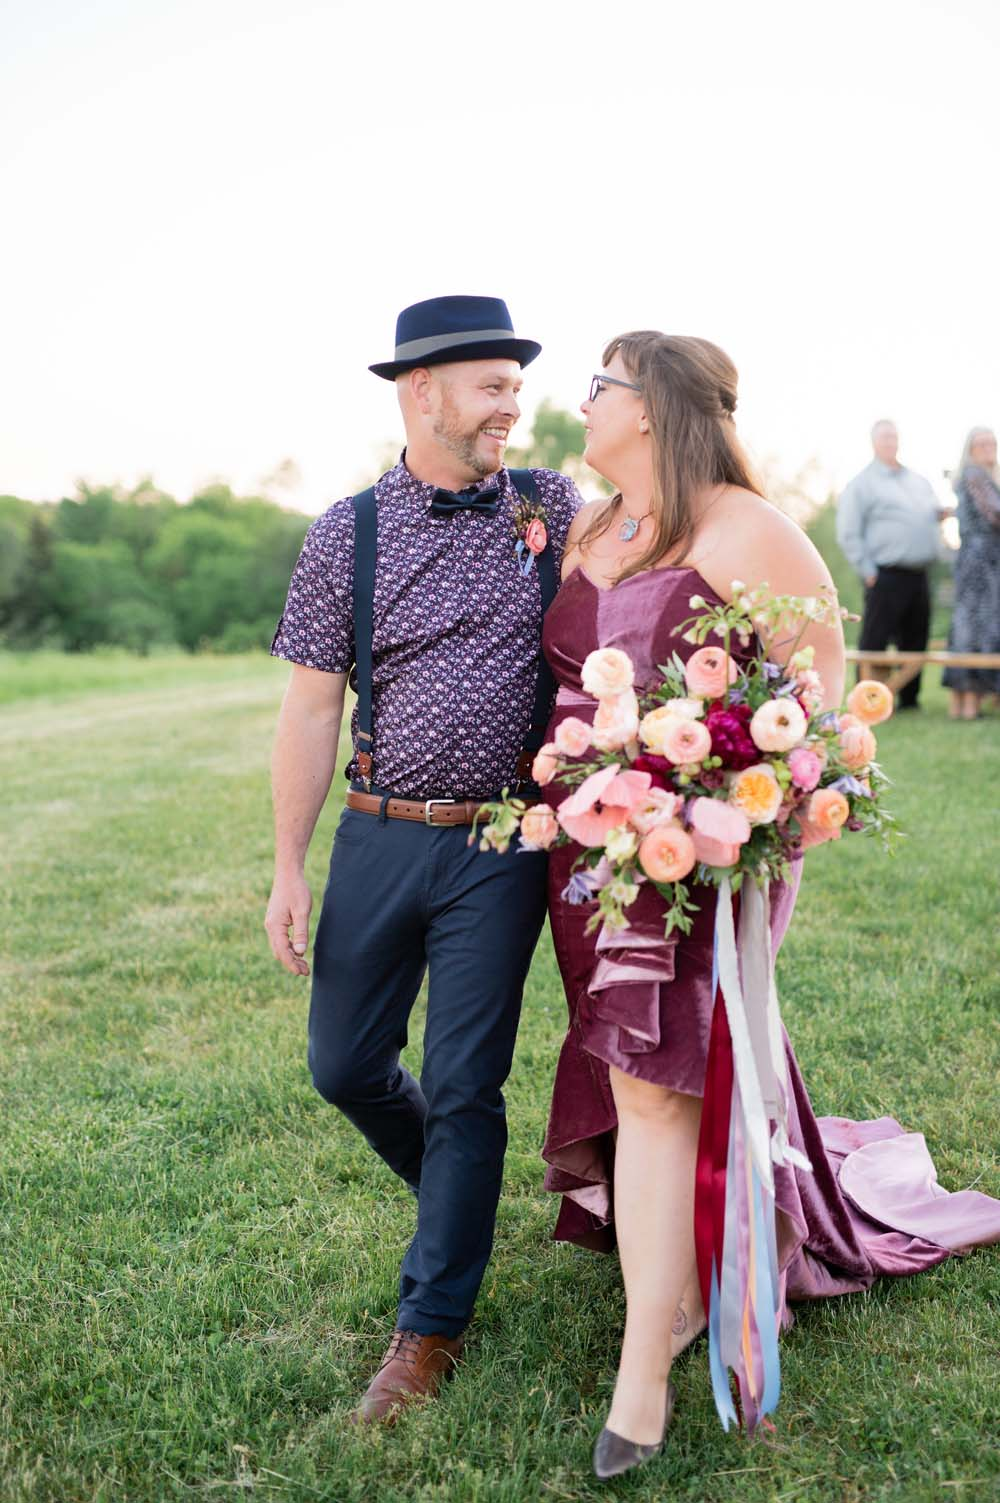 A Quirky Non-Traditional Wedding in Kitchener, Ontario - Couple in grass